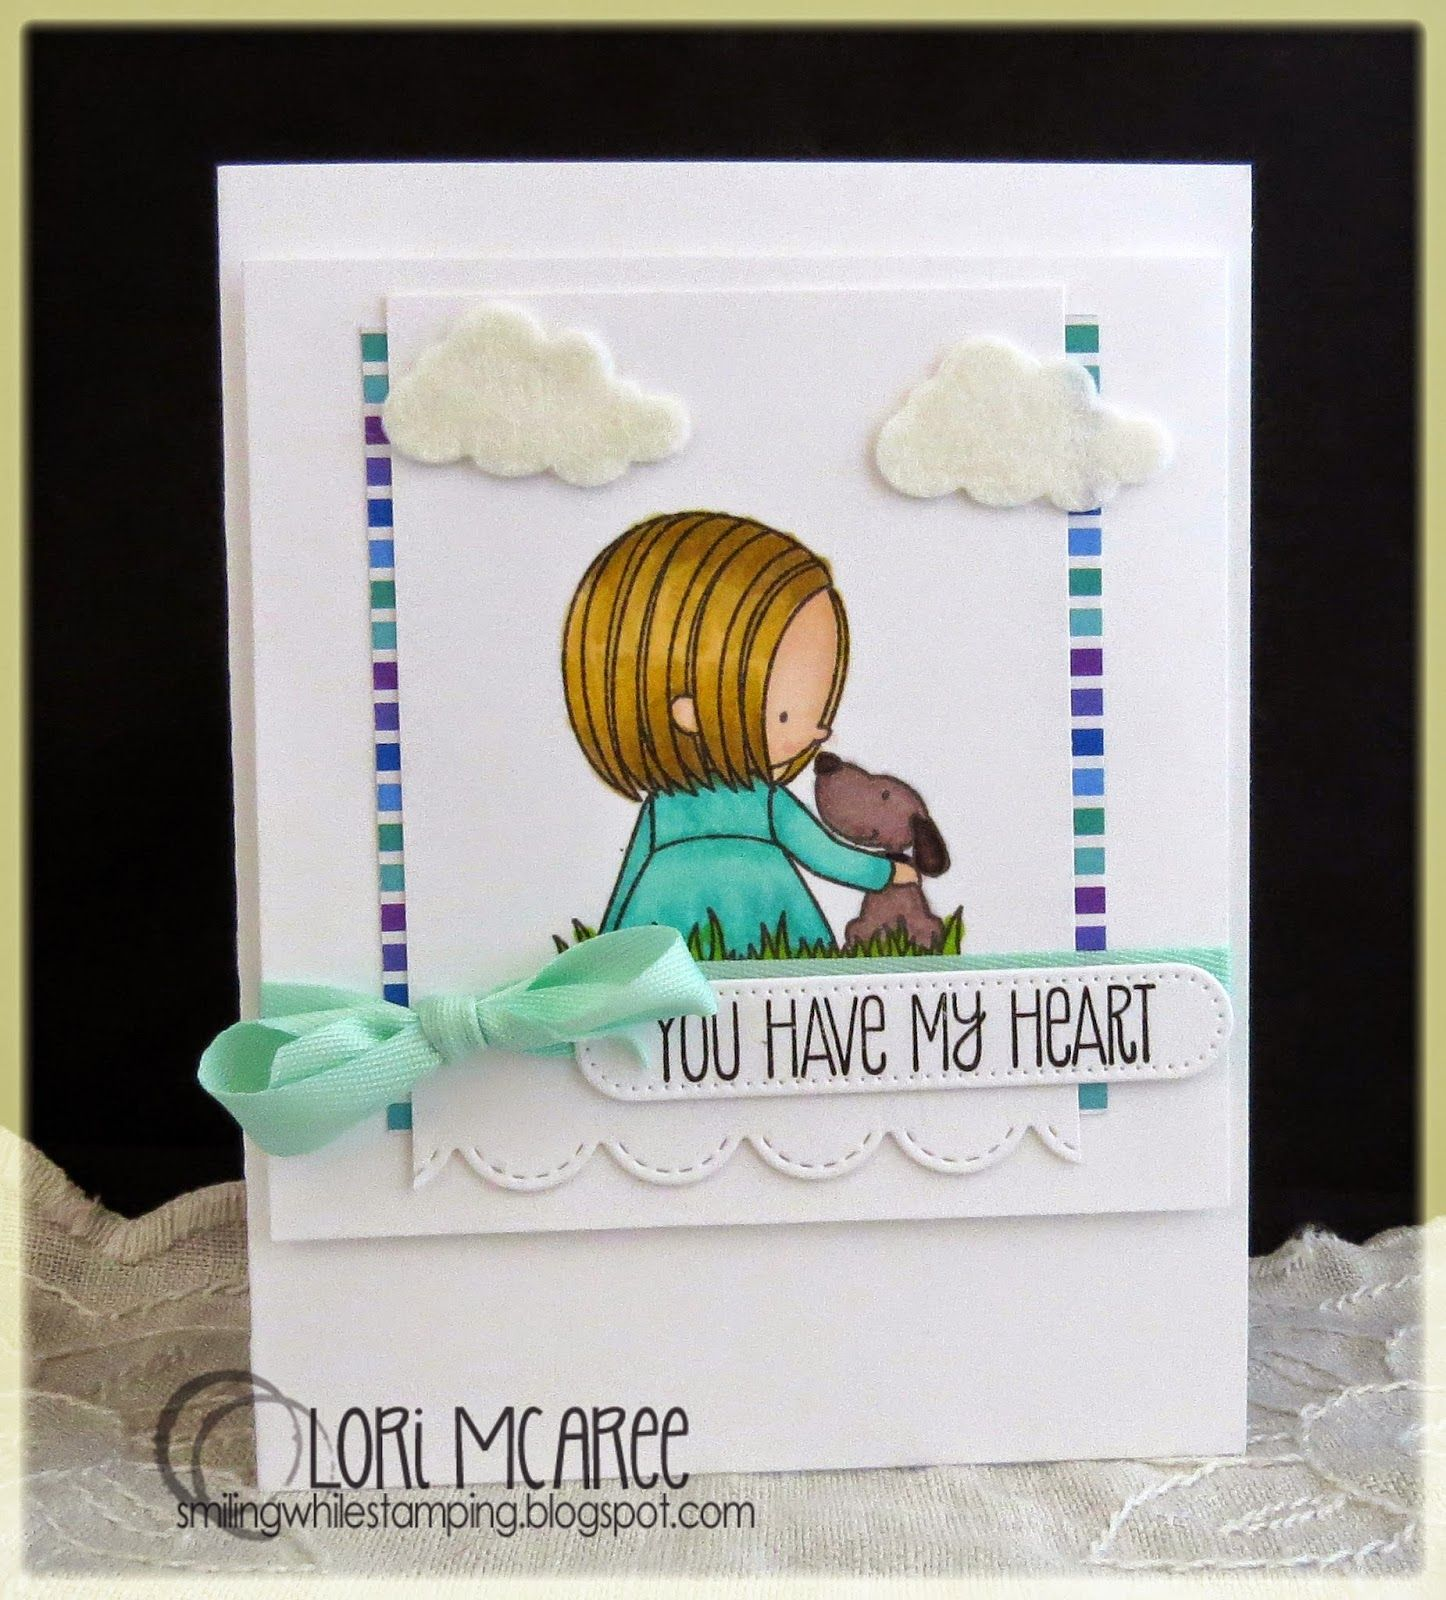 Smiling while Stamping: You Have My Heart handmade love/anniversary card using My Favorite Things You Have My Heart stamp set